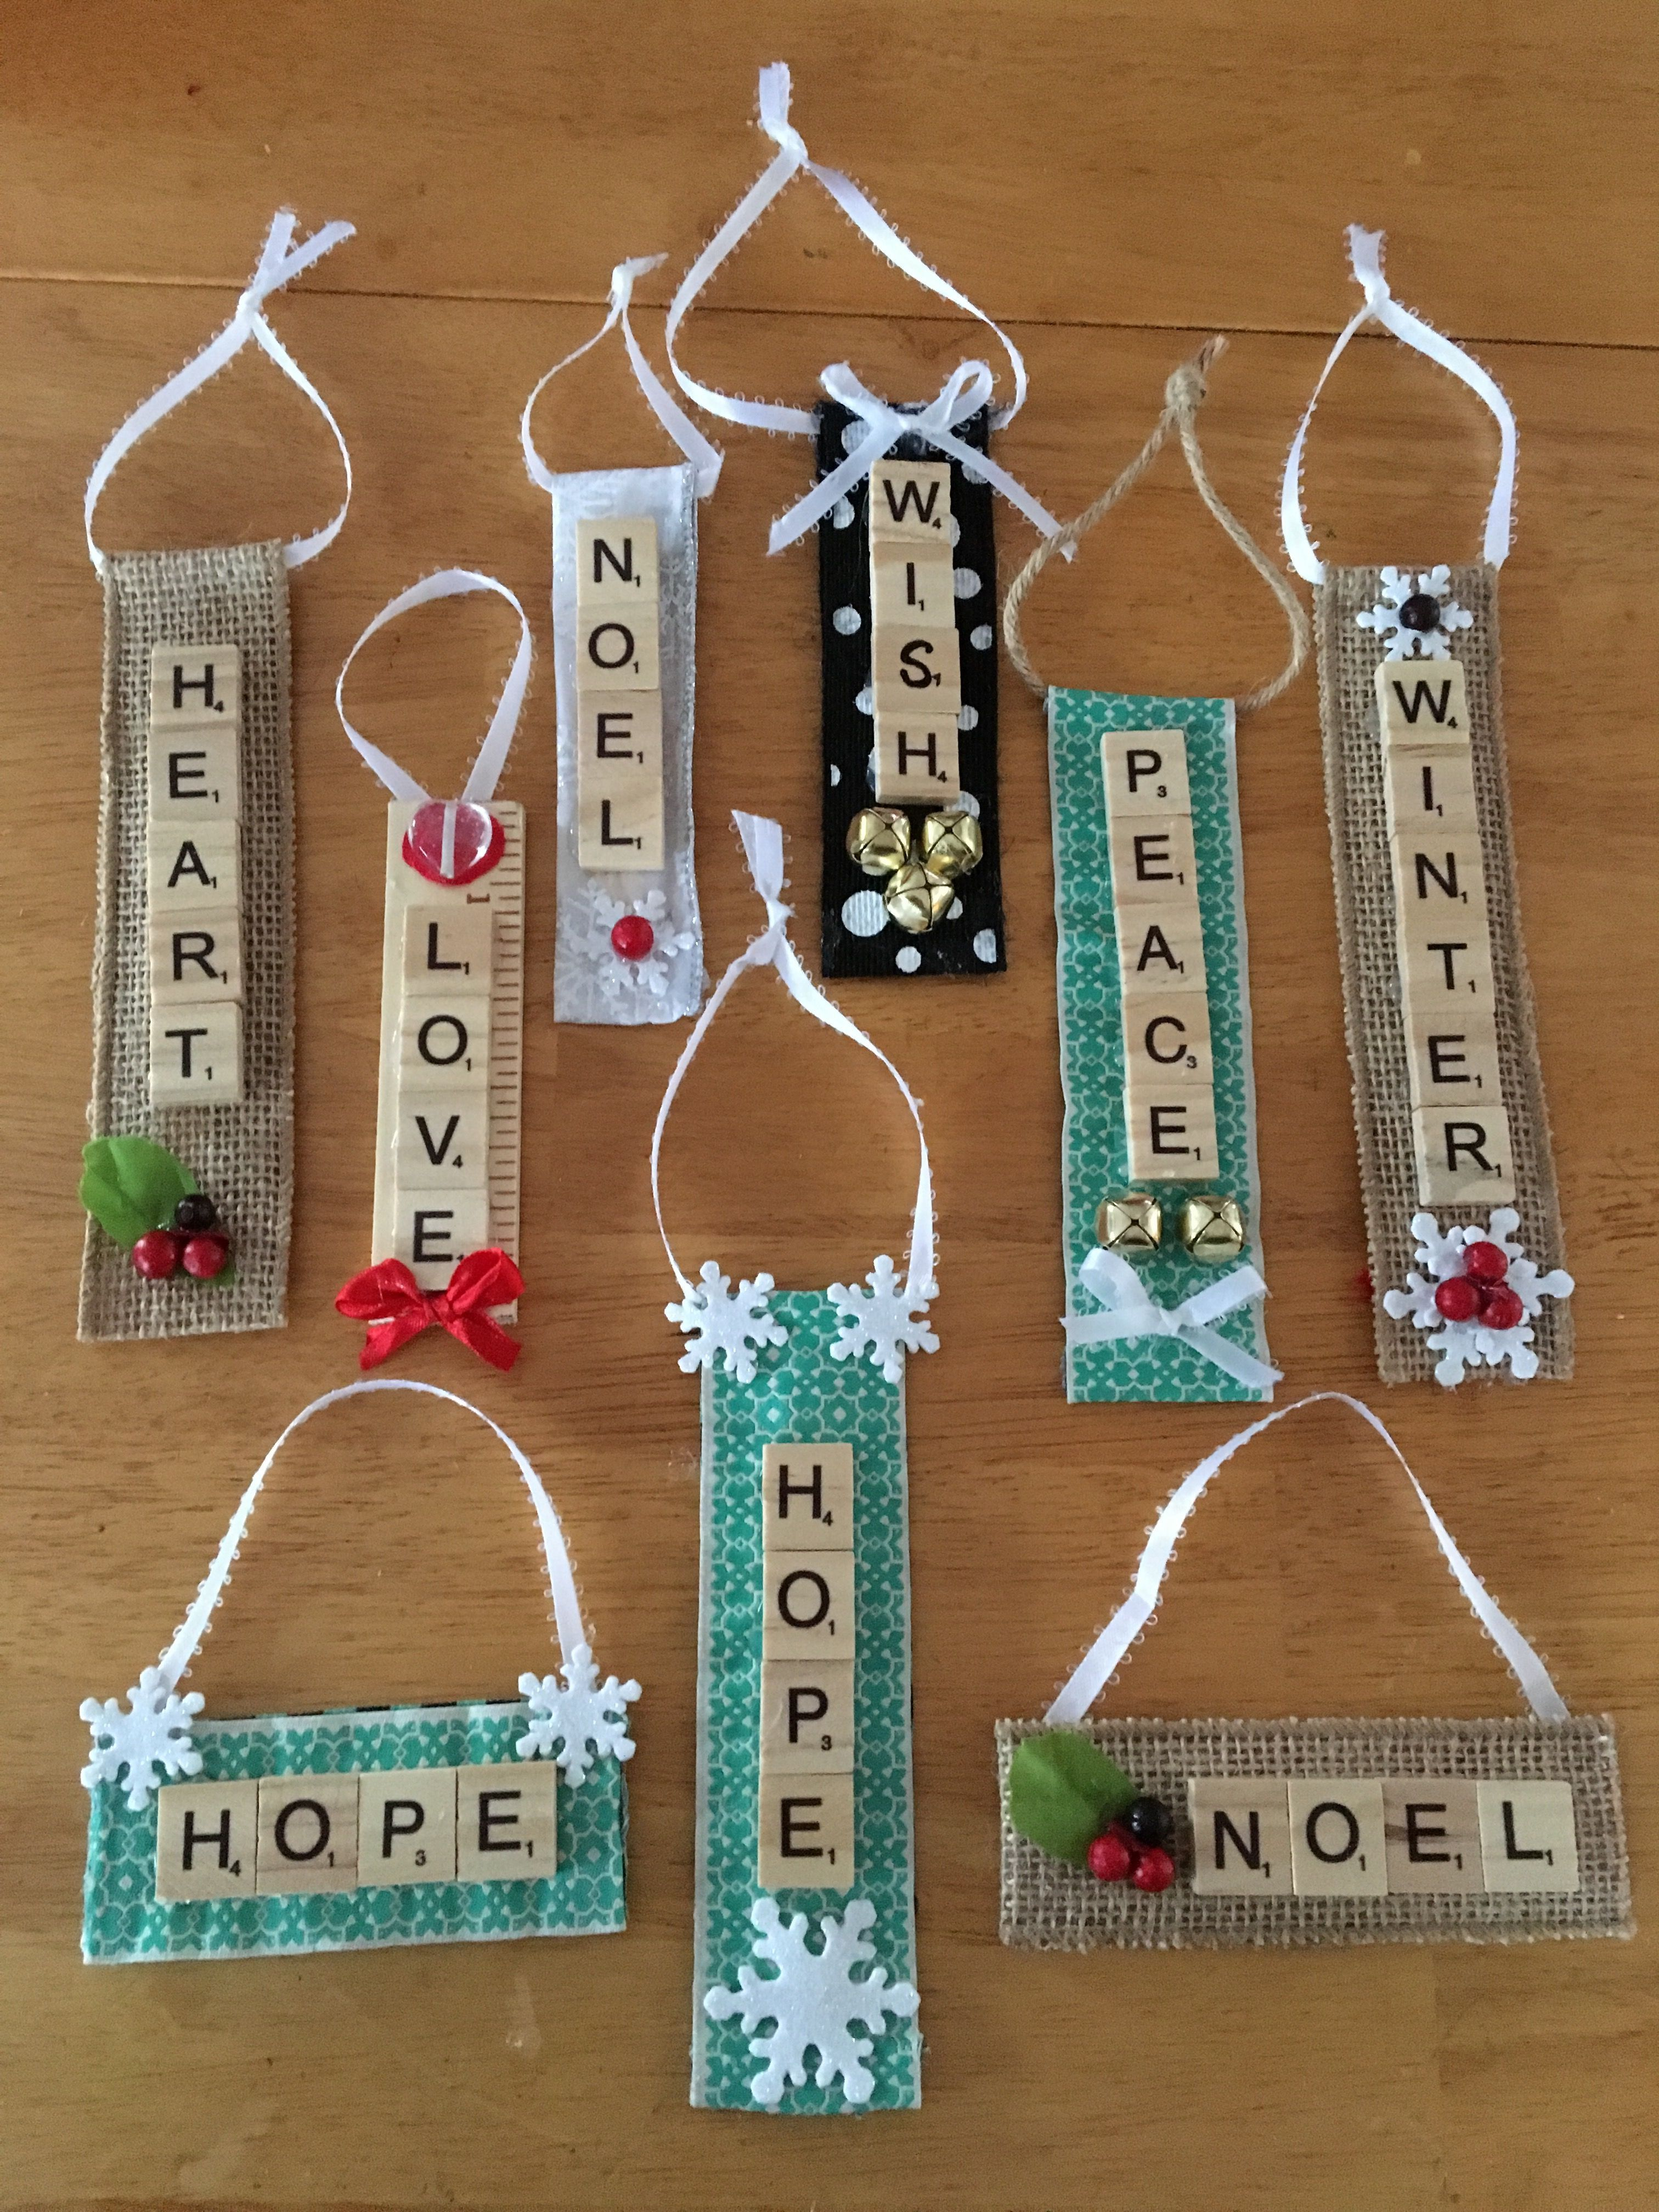 Scrabble Tile Ornaments Just Used Old Fabric Christmas Ornament Crafts Christmas Crafts Diy Christmas Crafts